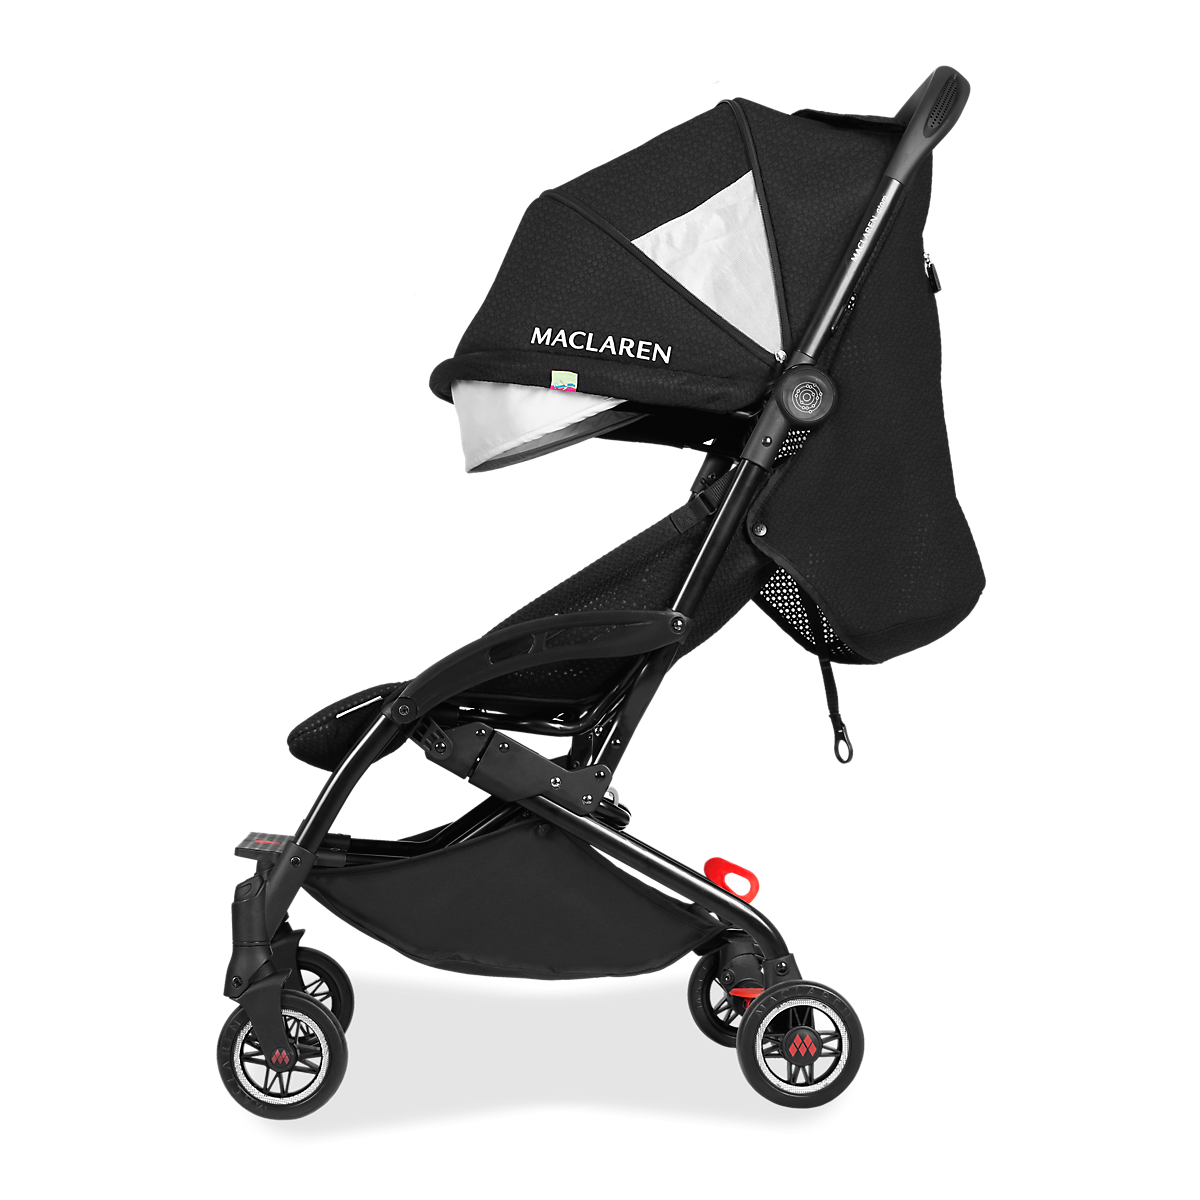 Maclaren Atom 475 (With images) Baby car seats